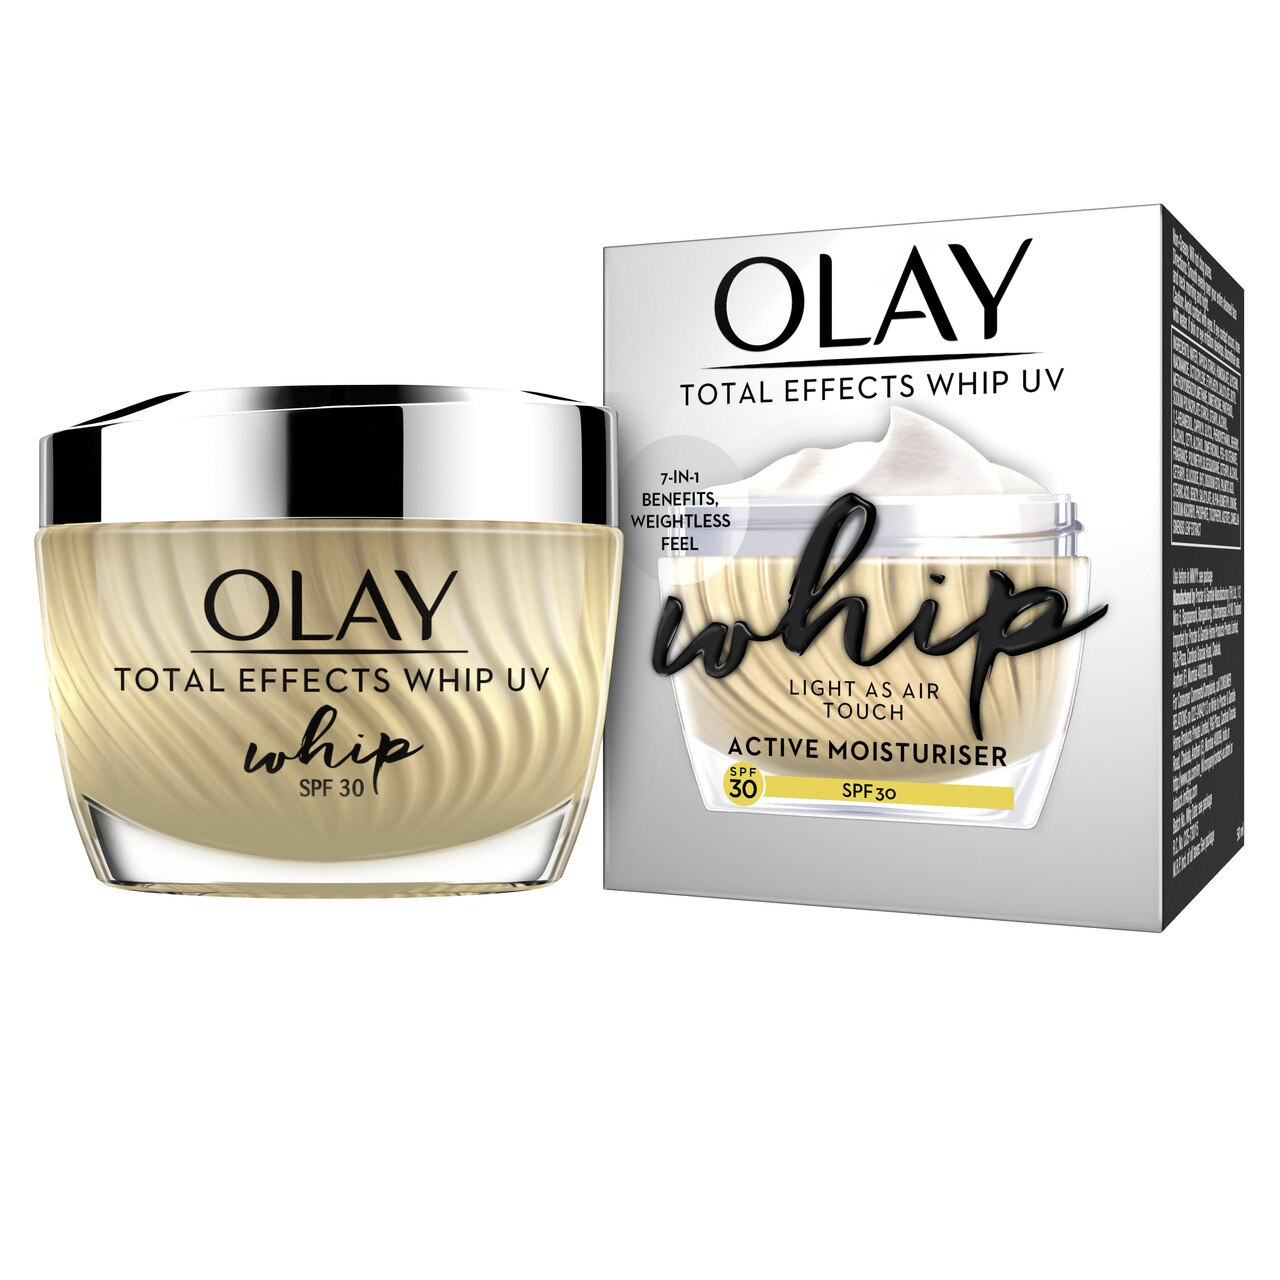 Olay Total Effects Whips SPF 30